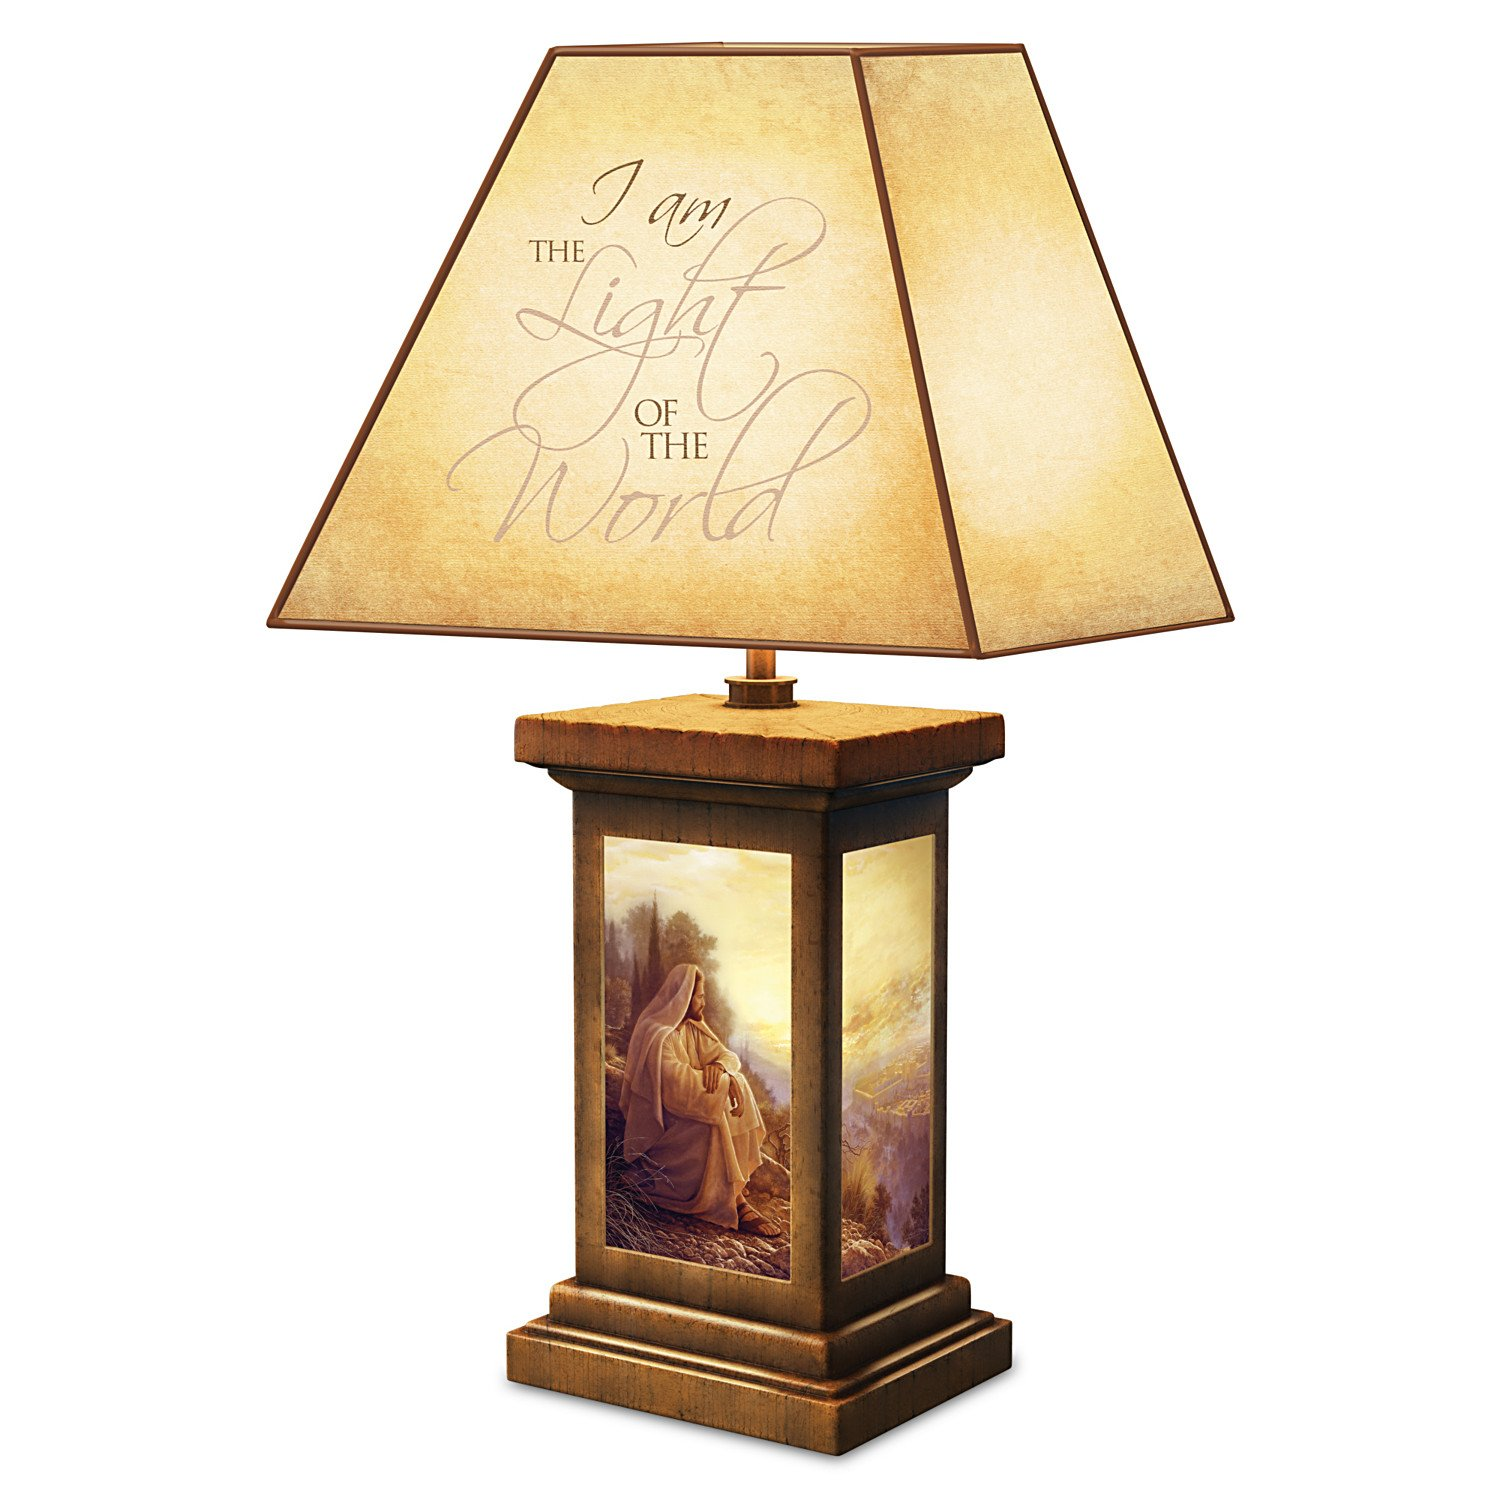 Greg Olsen Light Of The World Jesus Lamp With Scripture Revealing Shade by The Bradford Exchange